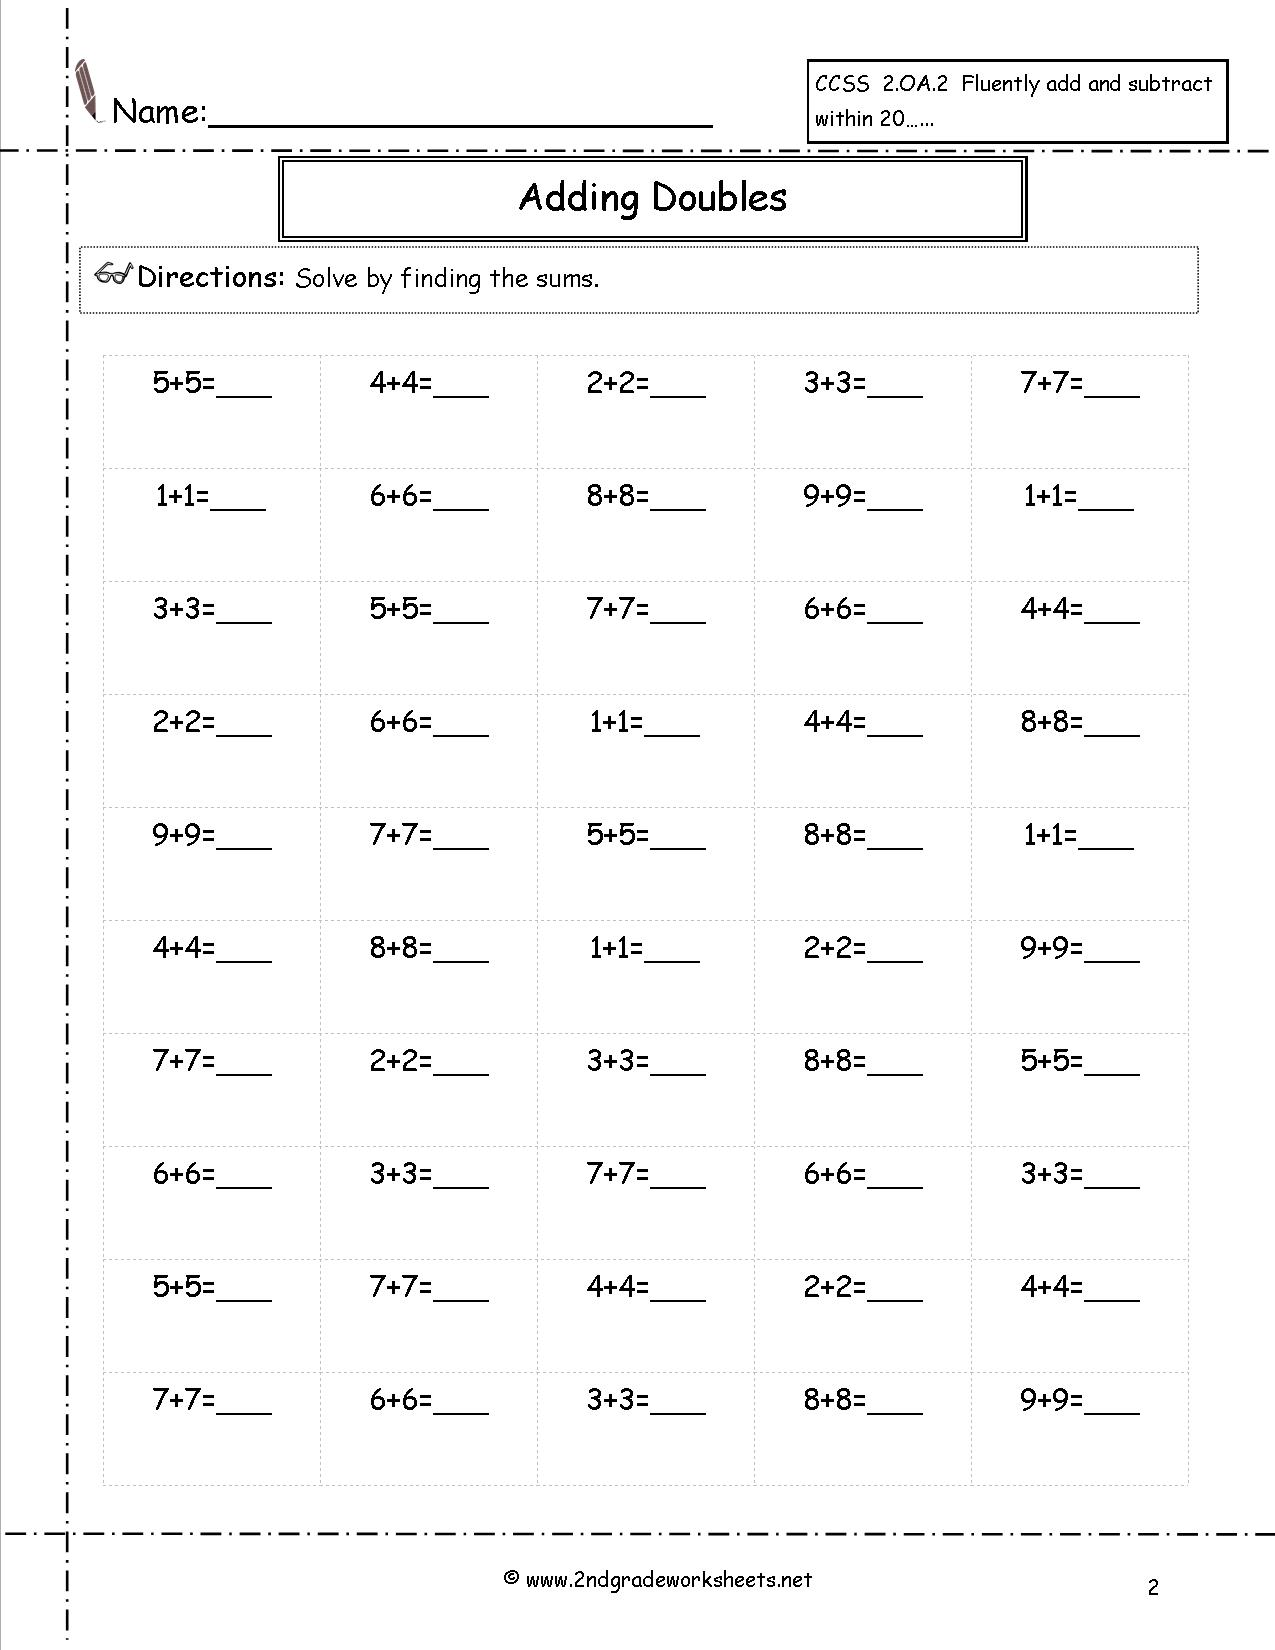 17 Best Images Of Multiplication Worksheets 50 Problems